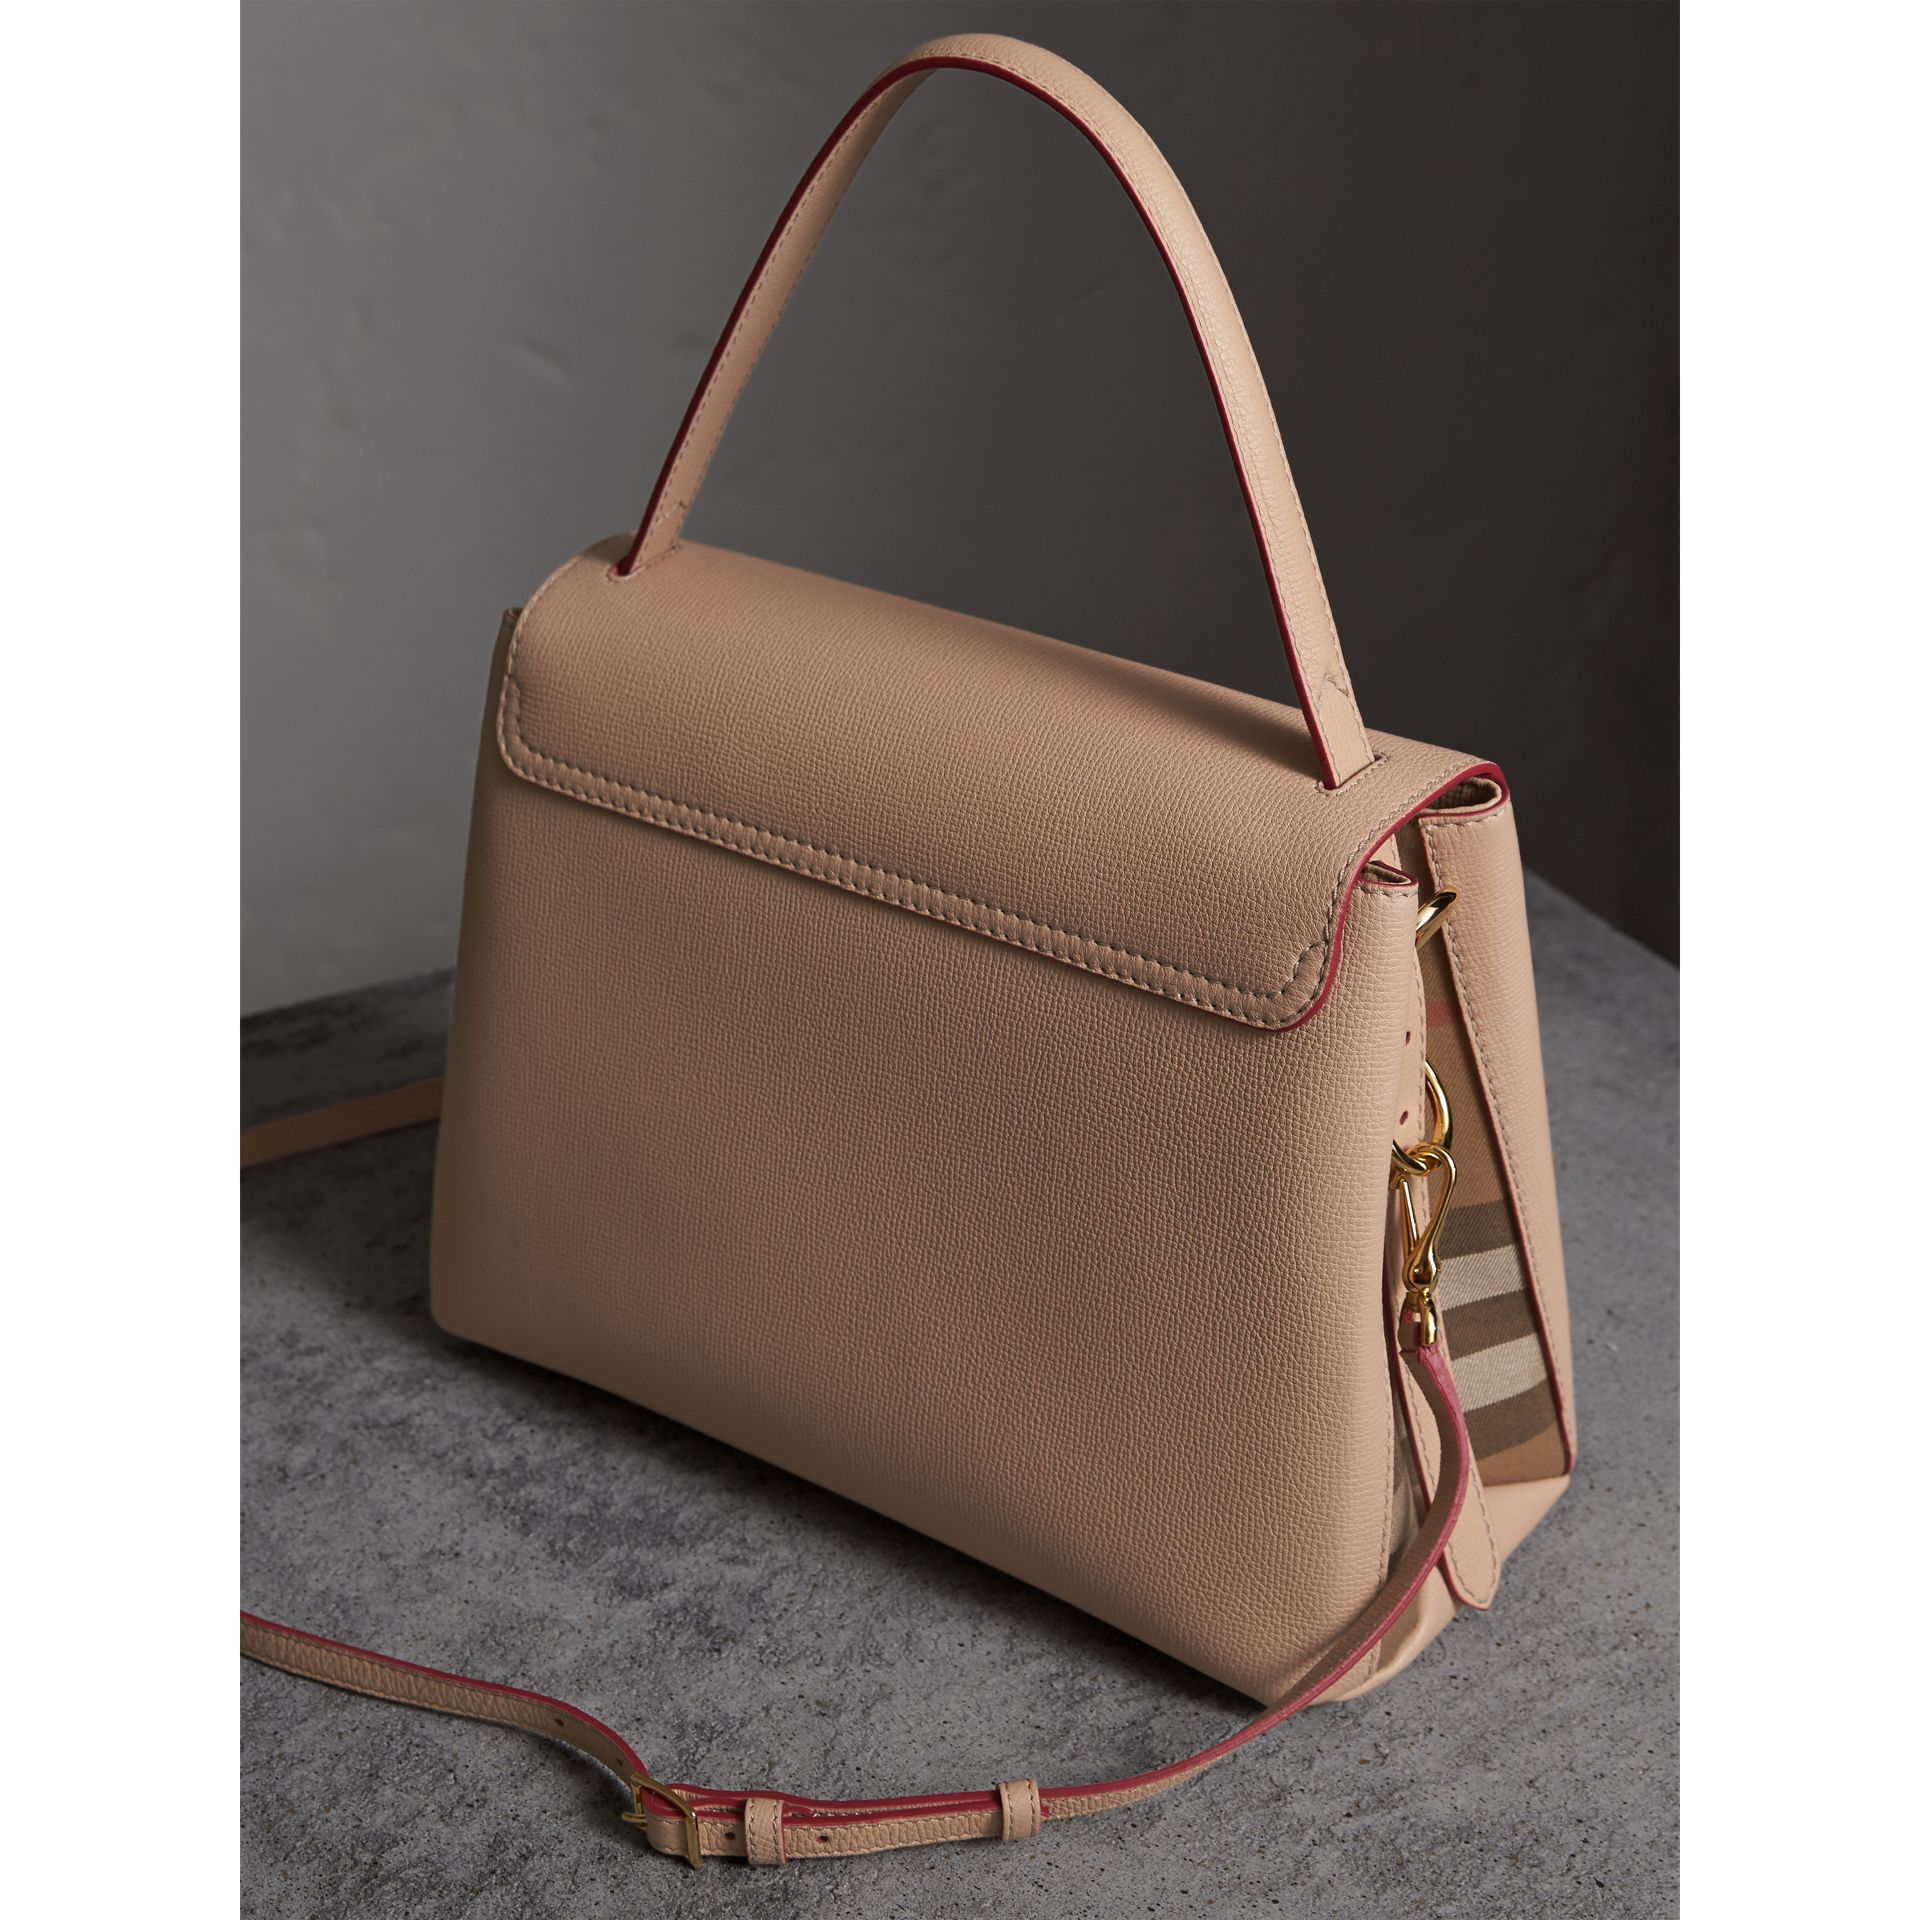 Medium Grainy Leather and House Check Tote Bag in Pale Apricot - Women | Burberry United States - gallery image 4